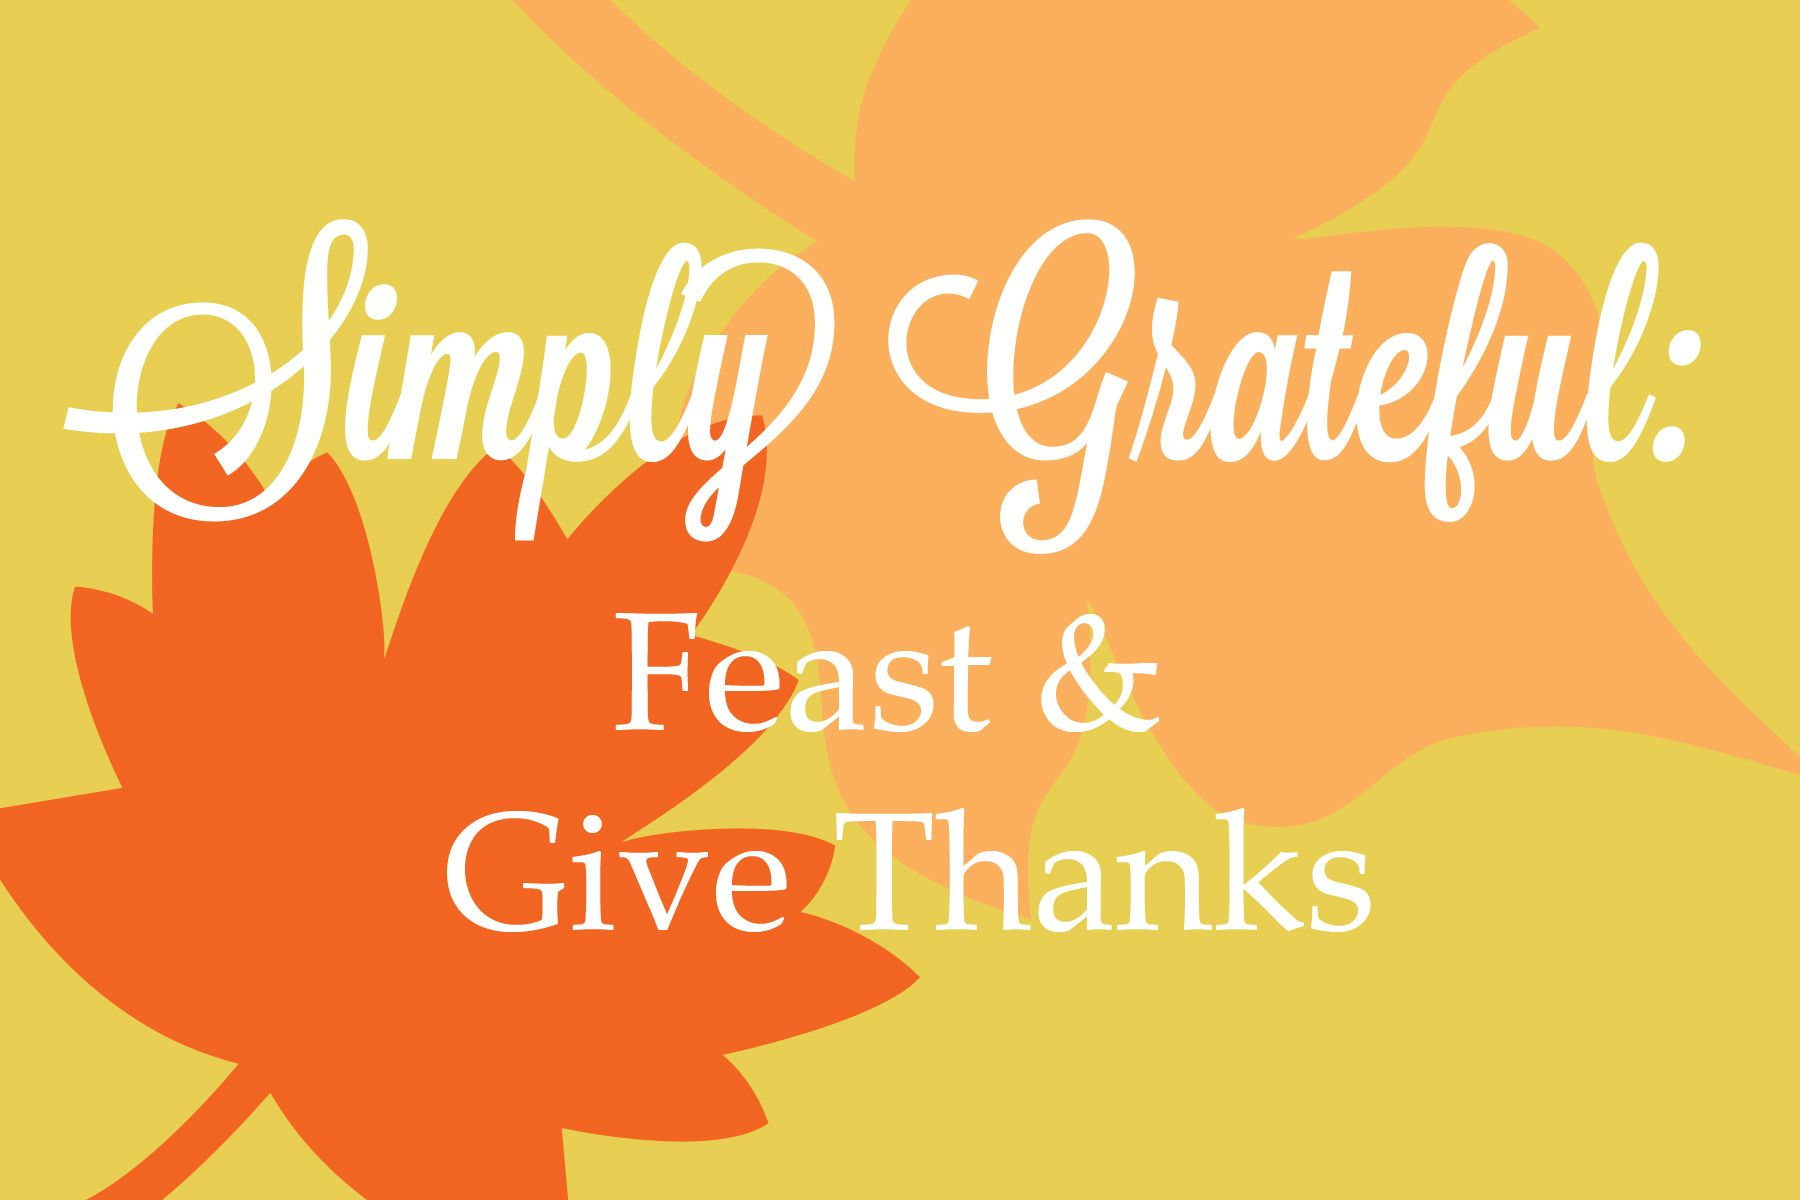 Give thanks for all you have with these recipes, crafts, and decorations.